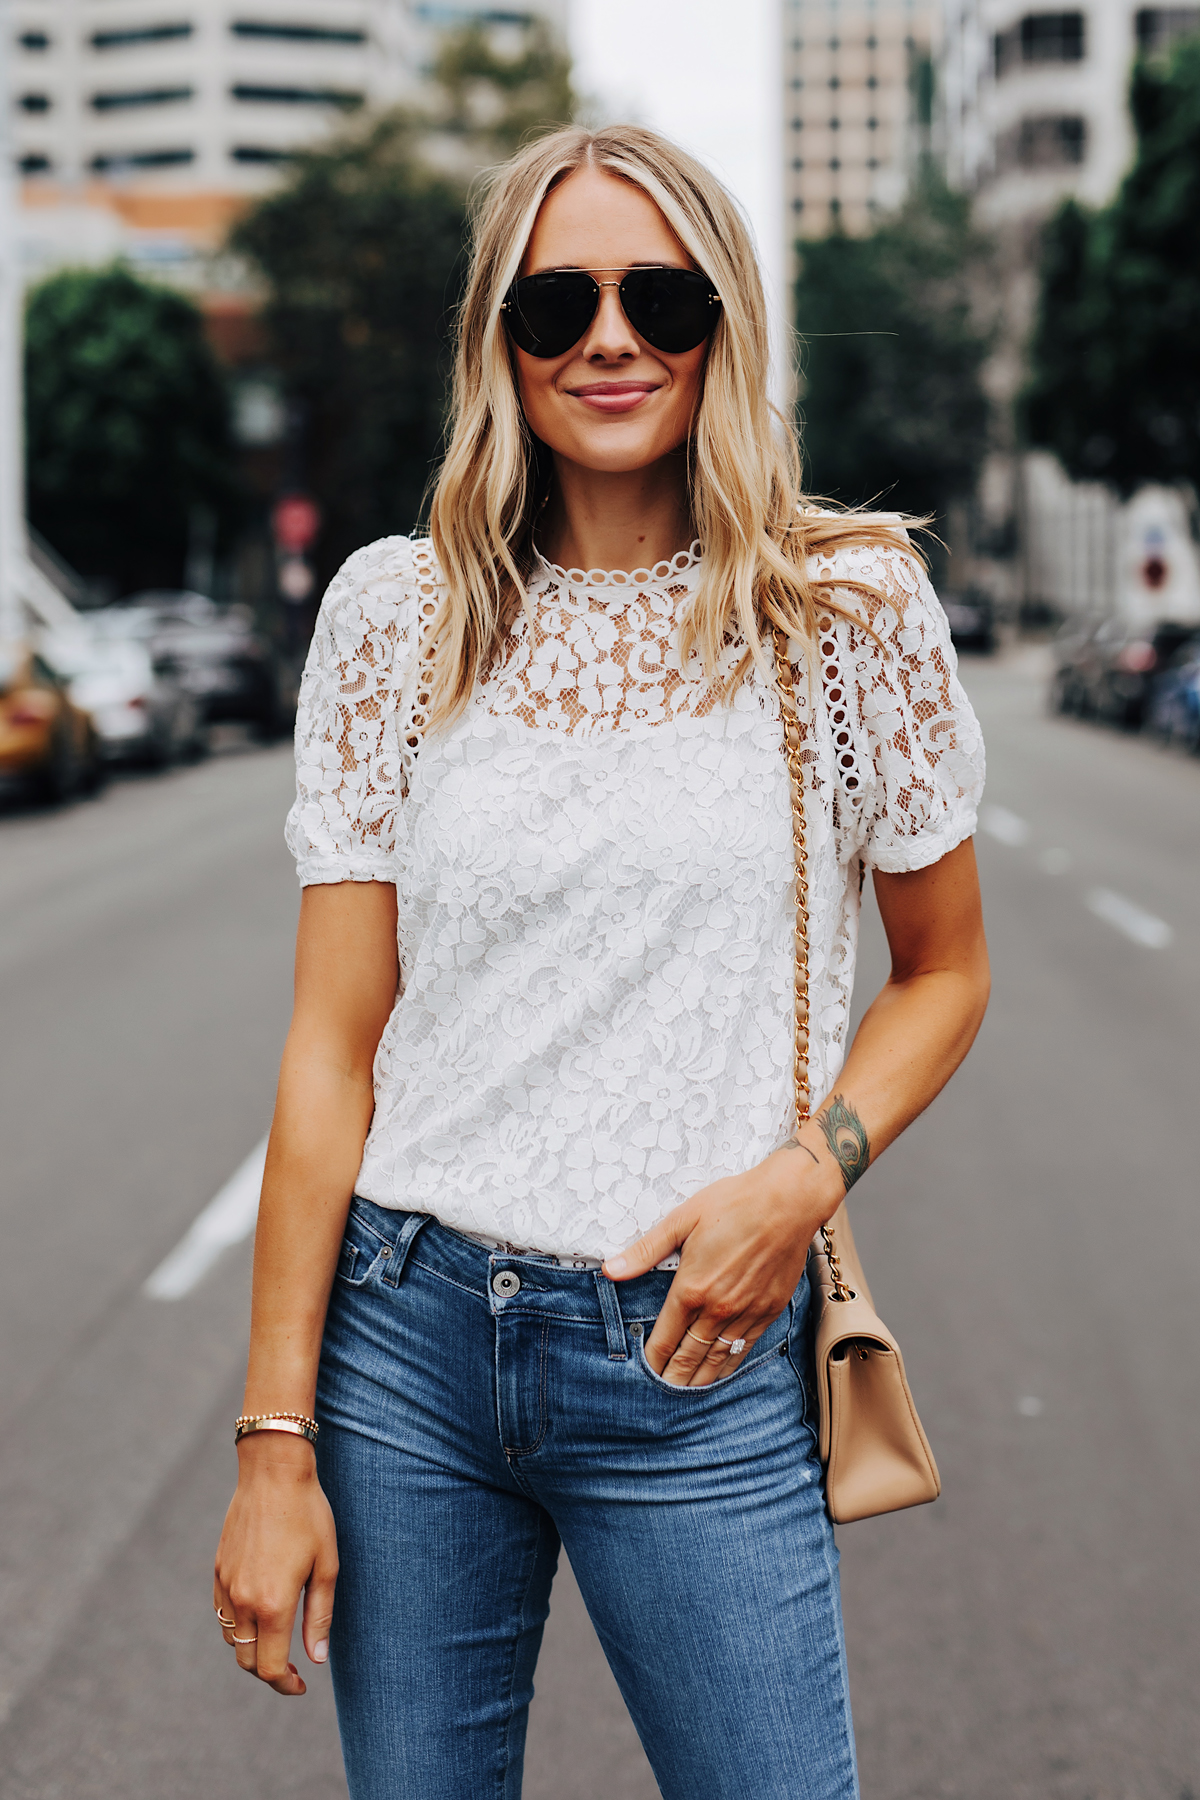 Fashion Jackson Wearing Bloomingdales Short Sleeve White Lace Top Paige Jeans Summer Date Night Outfit